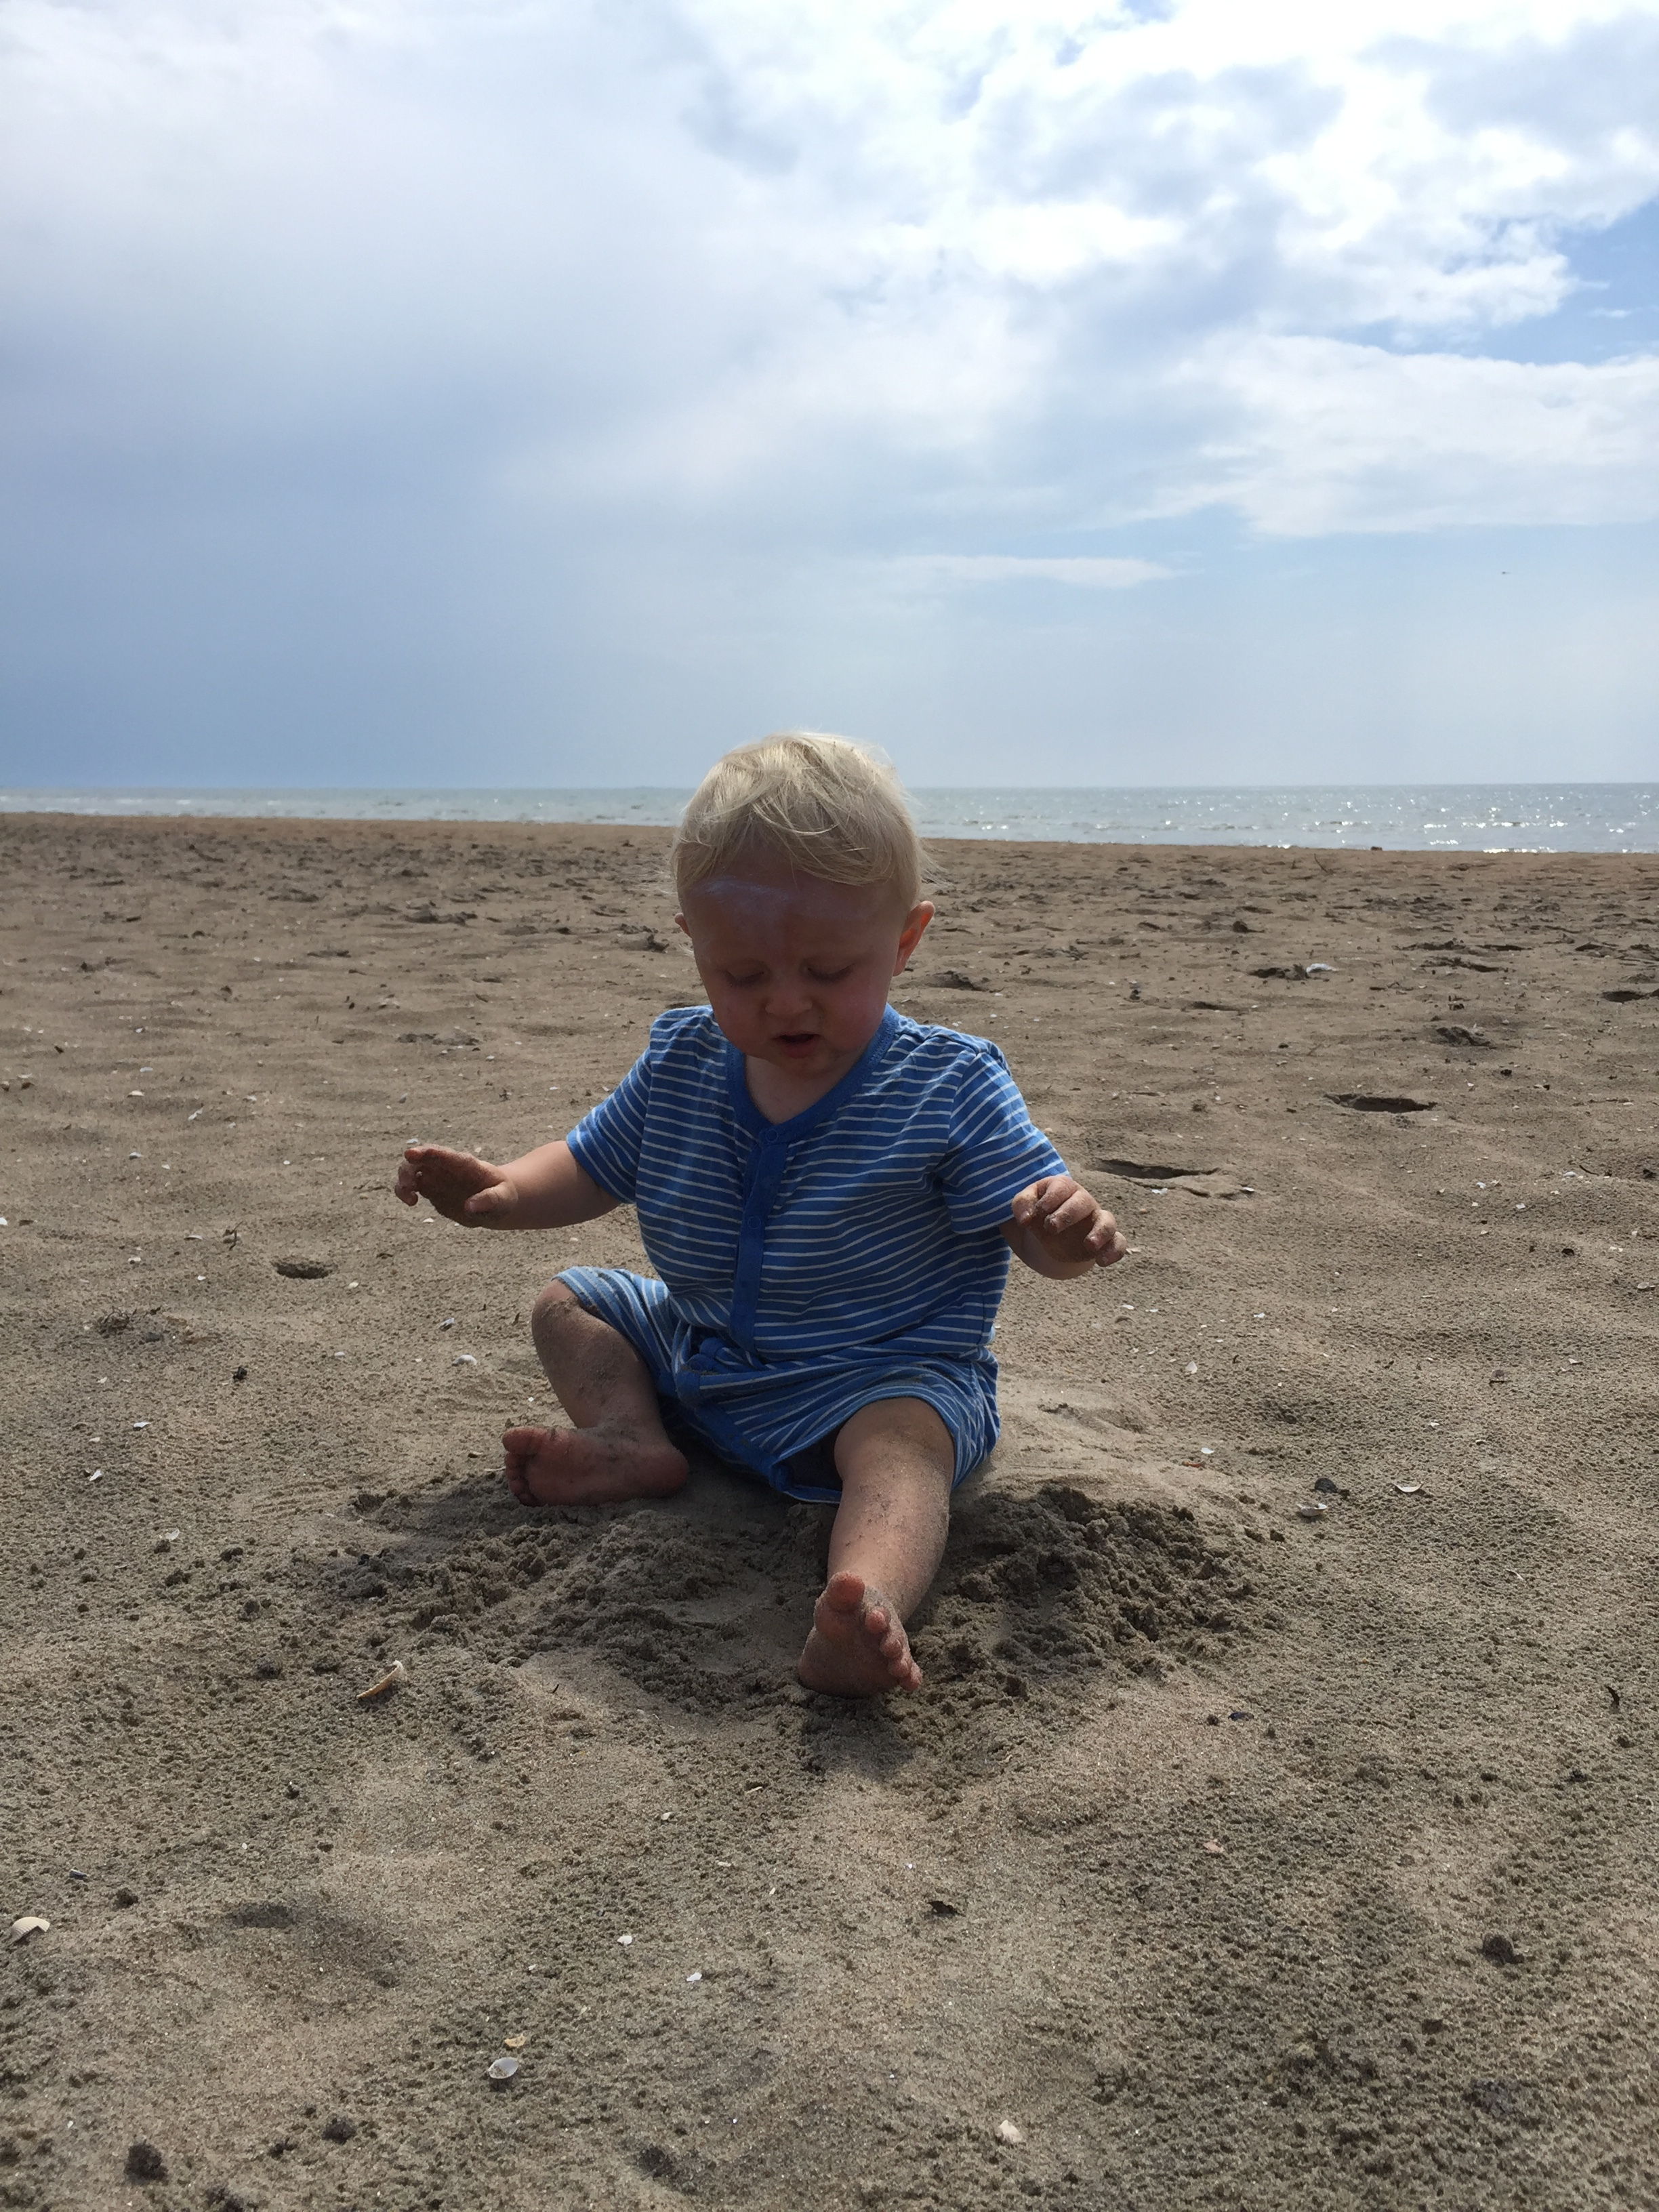 What's up with all this sand? It gets everywhere...